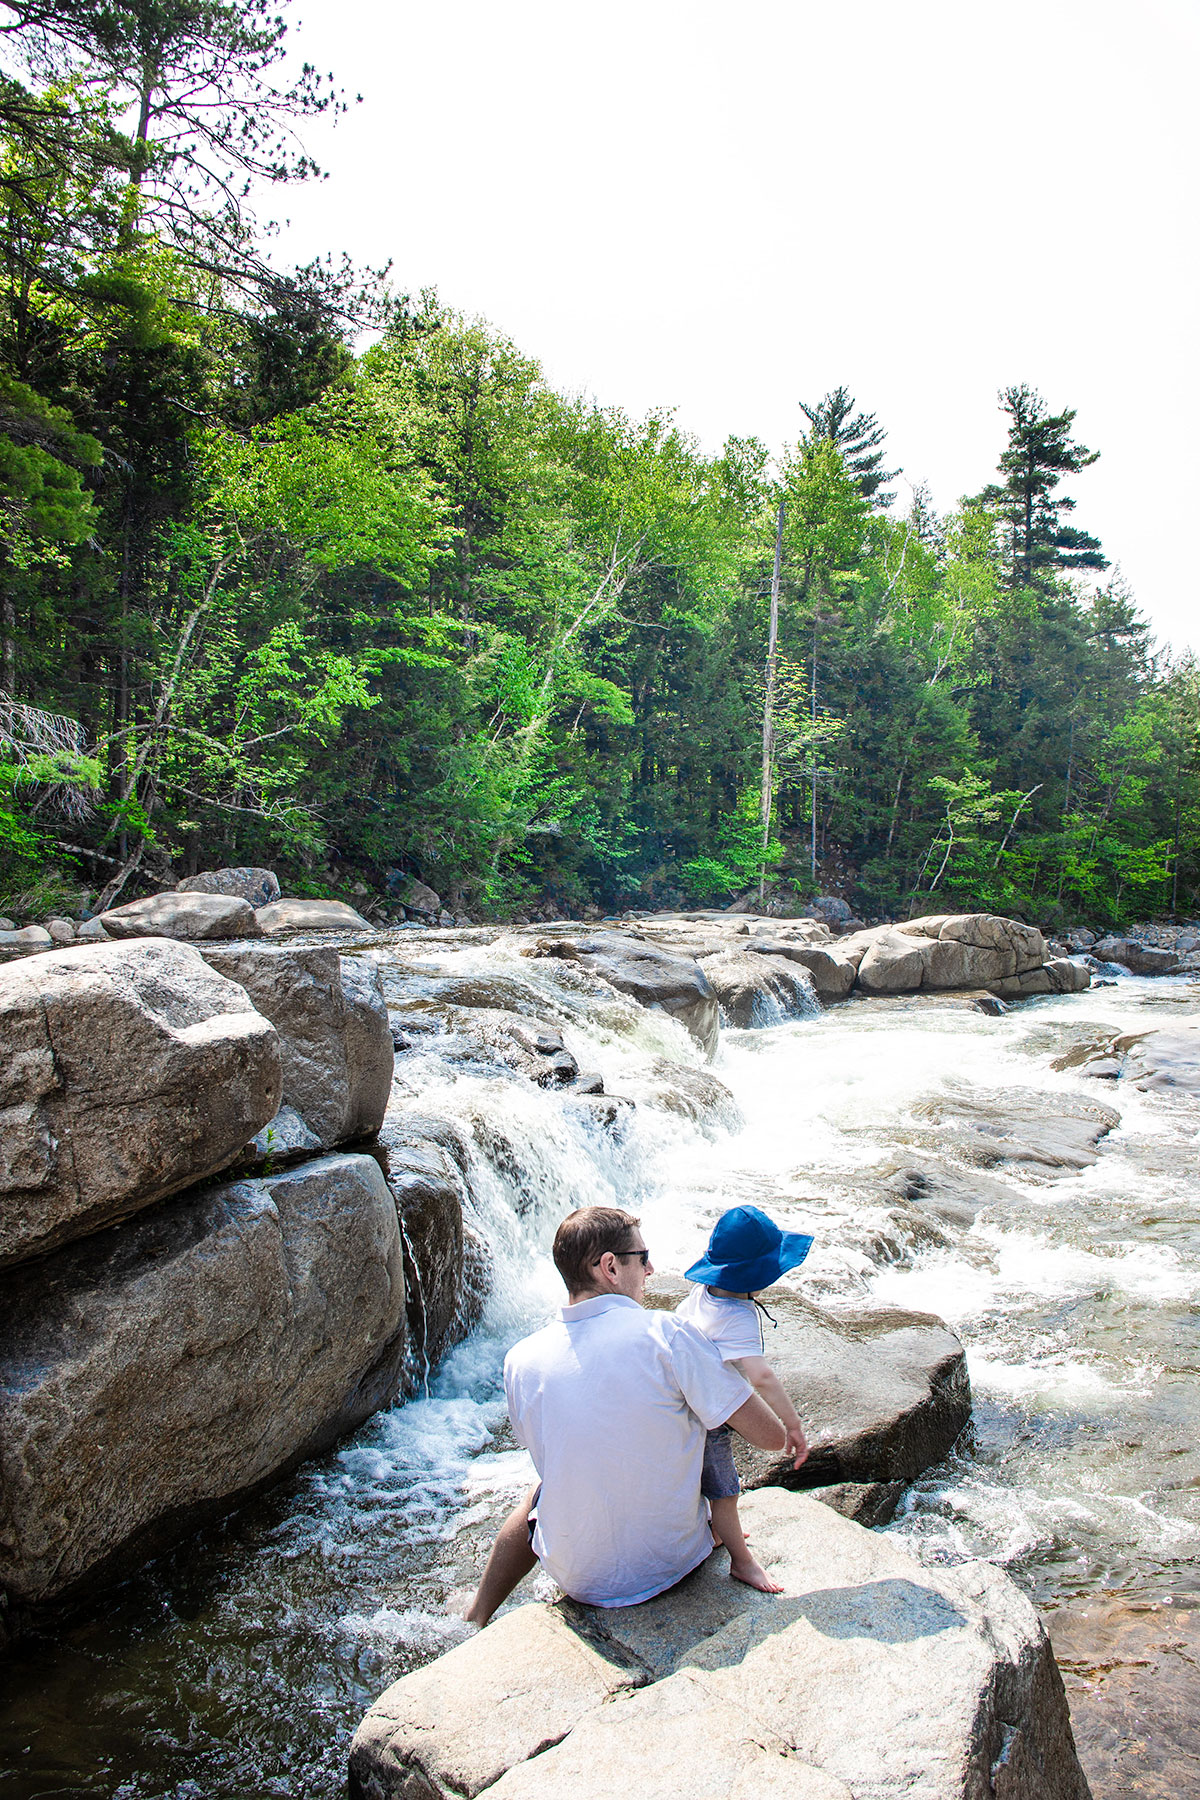 White-Mountains-NH-Lower-Falls-Scenic-Area-Kancamagus